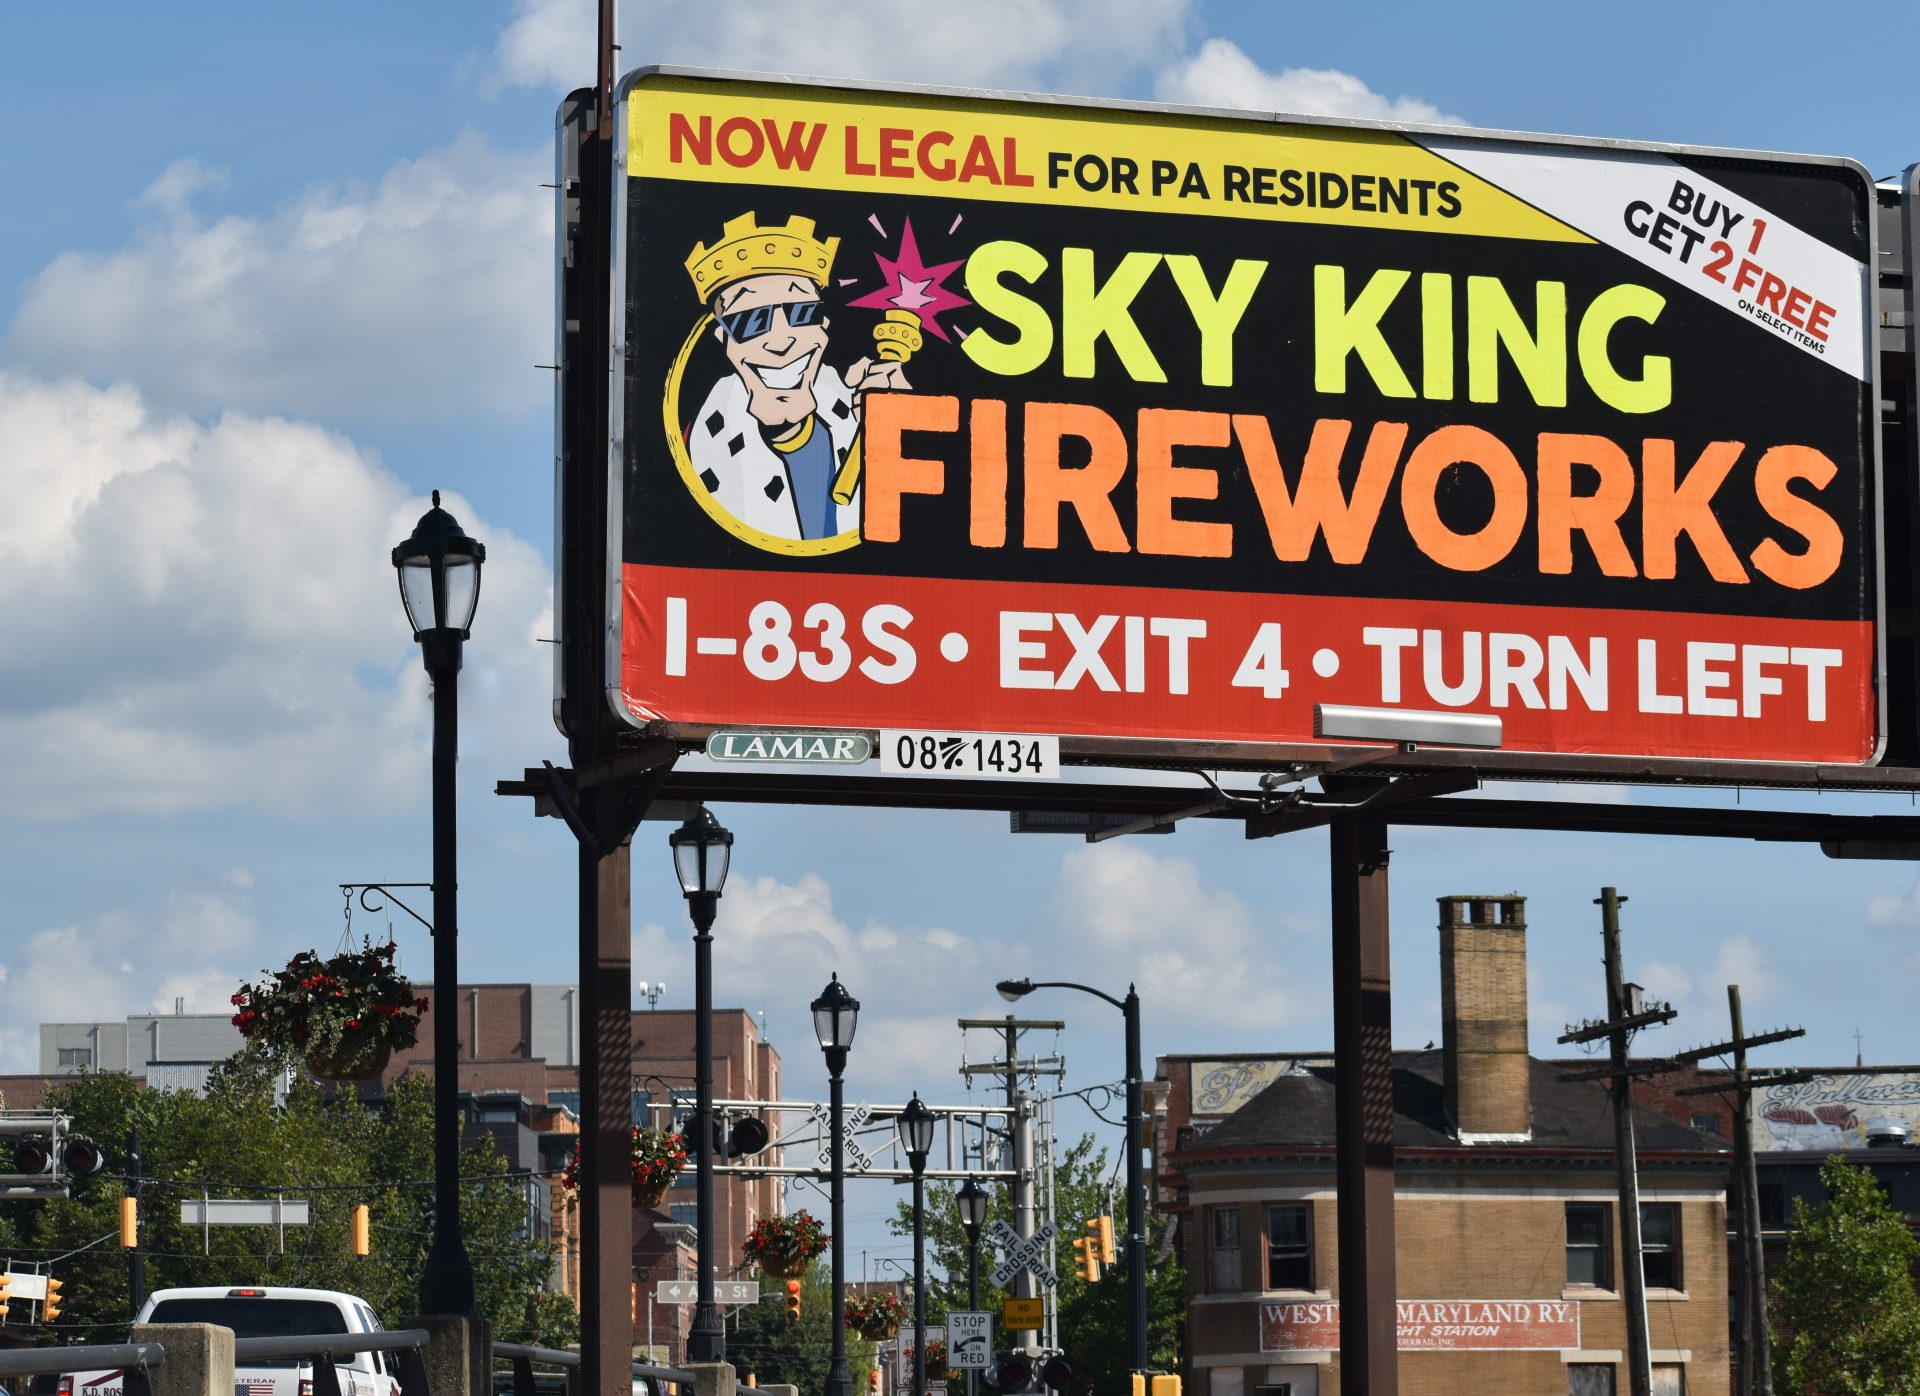 A billboard in York city, seen on July 10, 2019, highlights a change in Pennsylvania that made consumer fireworks legal for Pennsylvania residents.